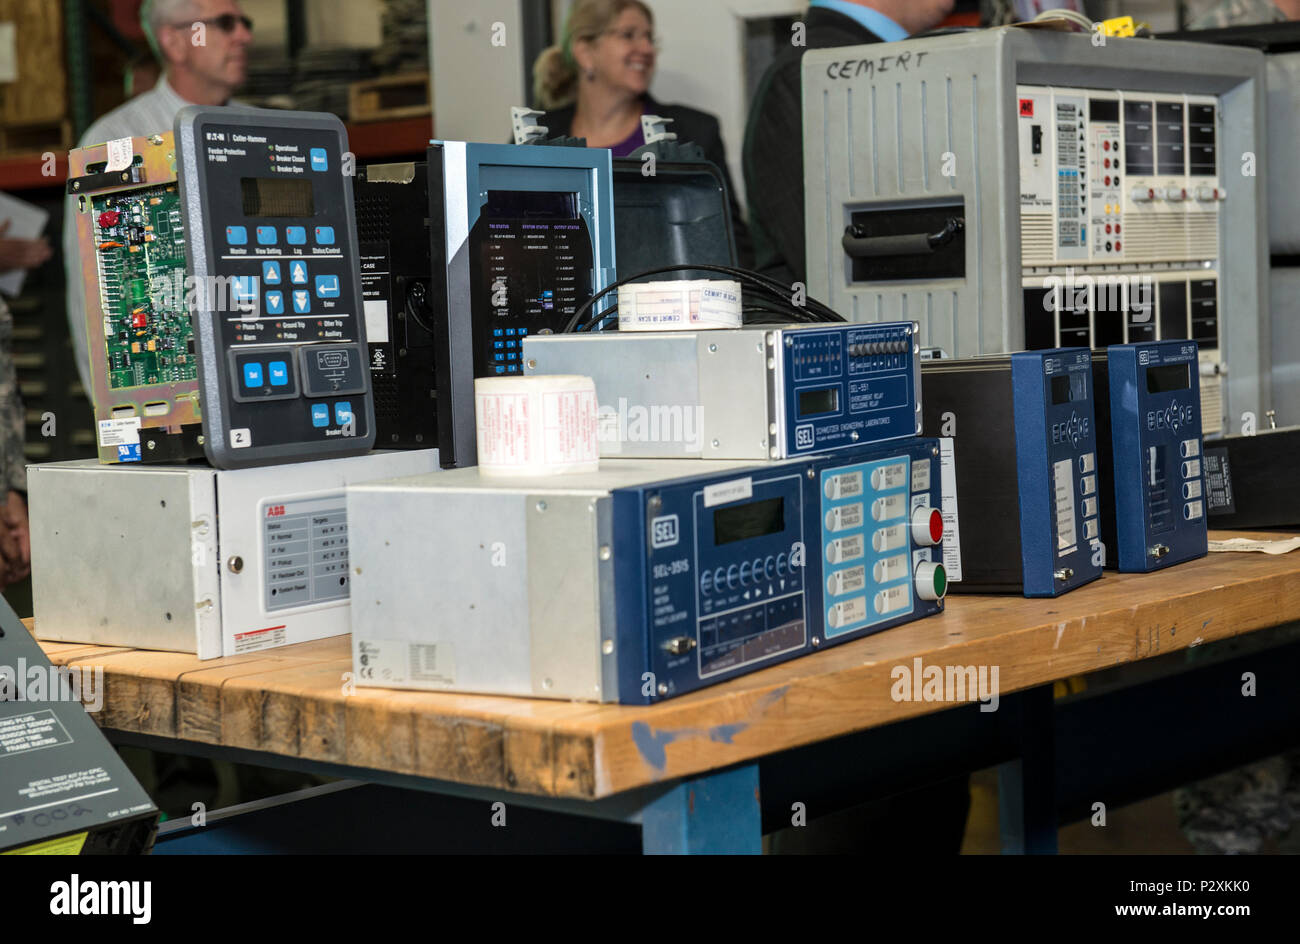 Relay Test Sets For Mechanical Electrical And Electronic High Circuit Breaker Voltage Relays Breakers As Part Of A Display Set Up Recent Tour Aug